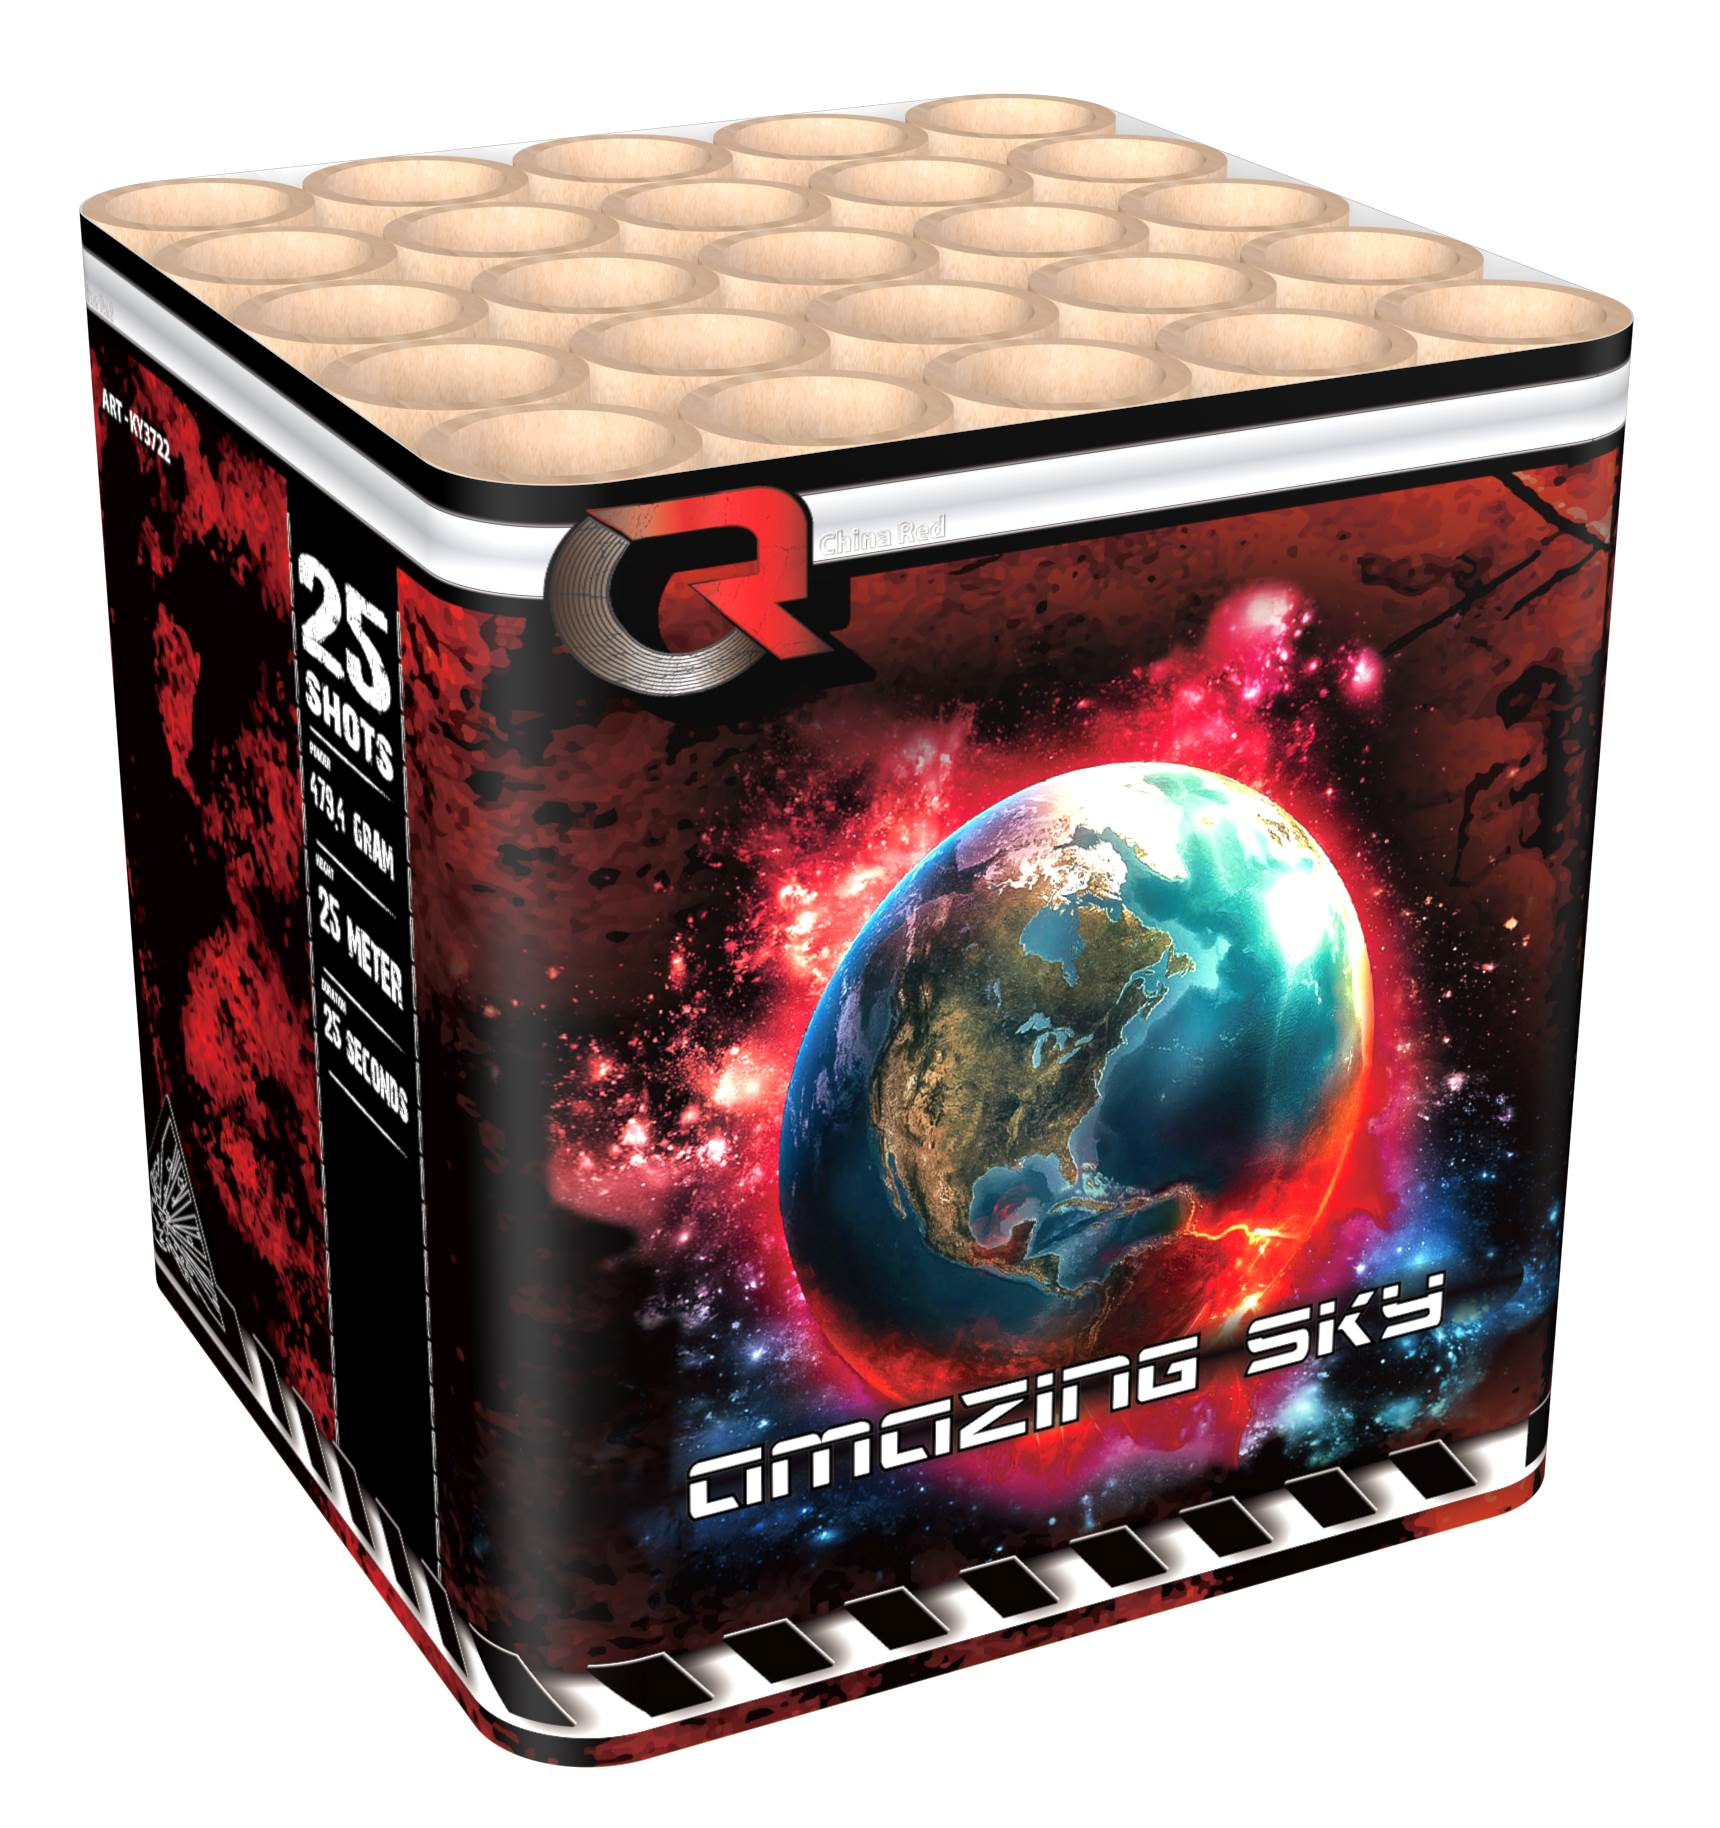 Amazing sky 500 gr cake mooie effecten ky3722 china red for Intratuin lochem